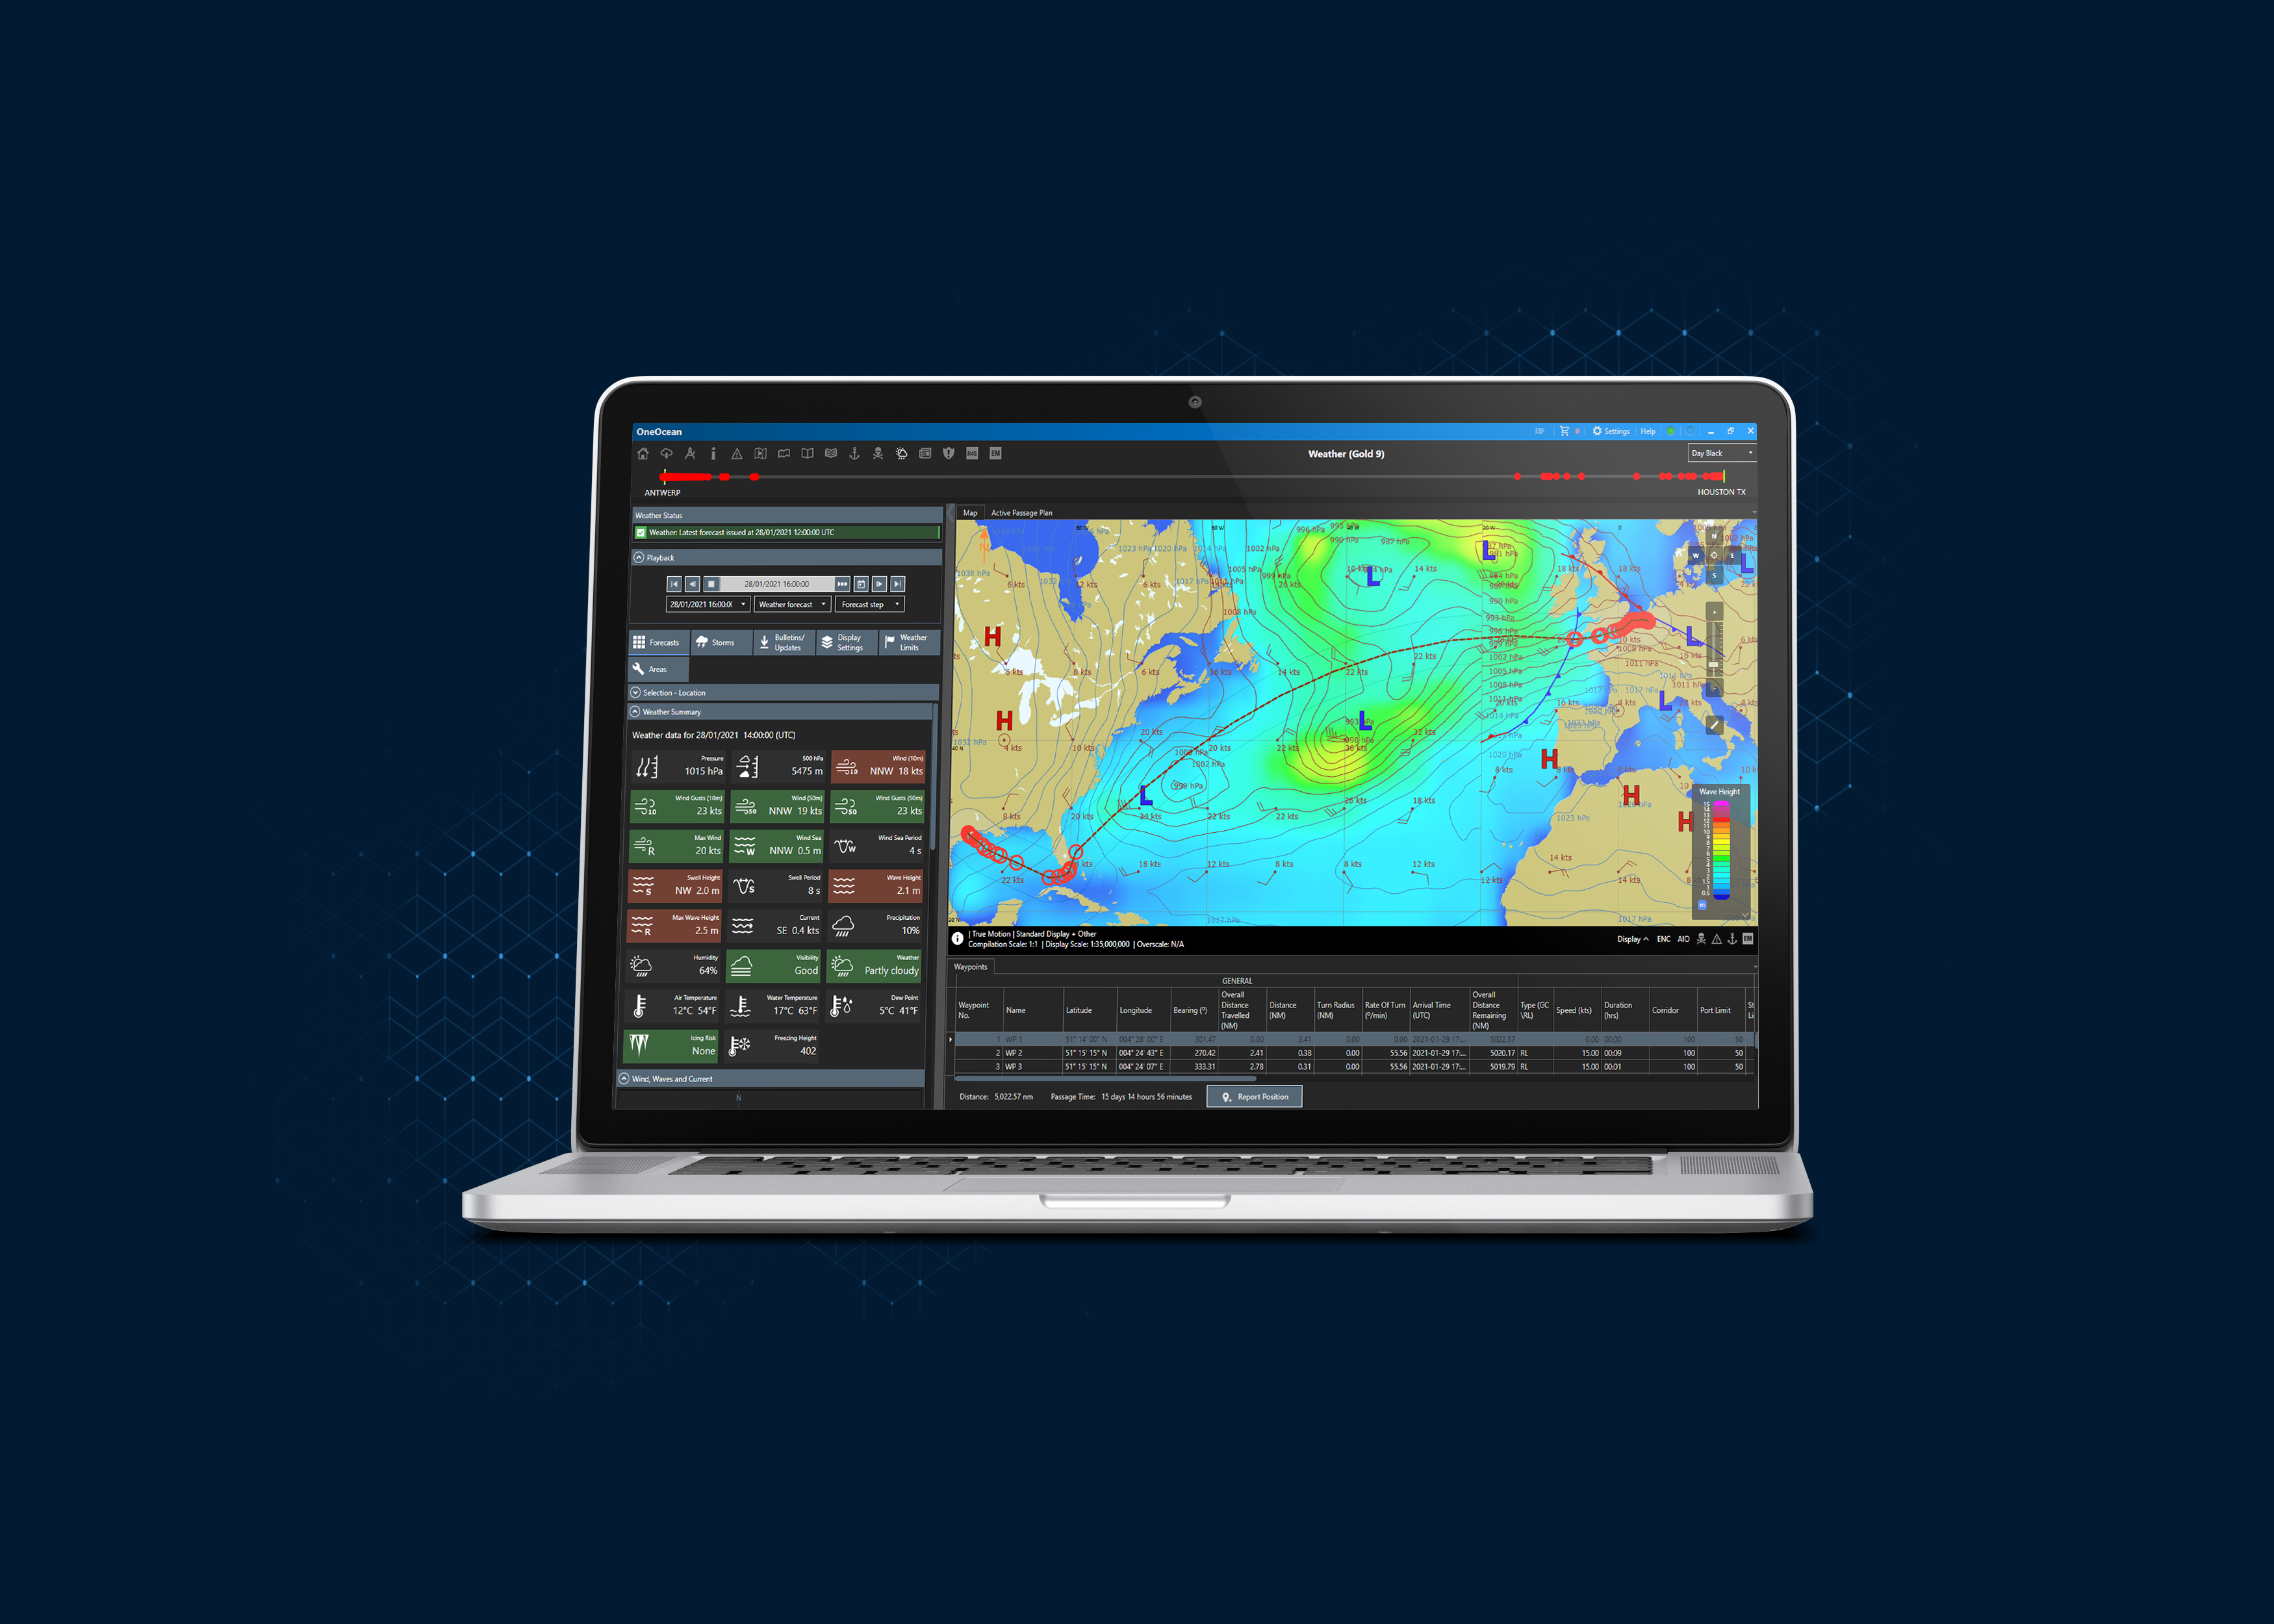 mac product shot of OneOcean voyage planning